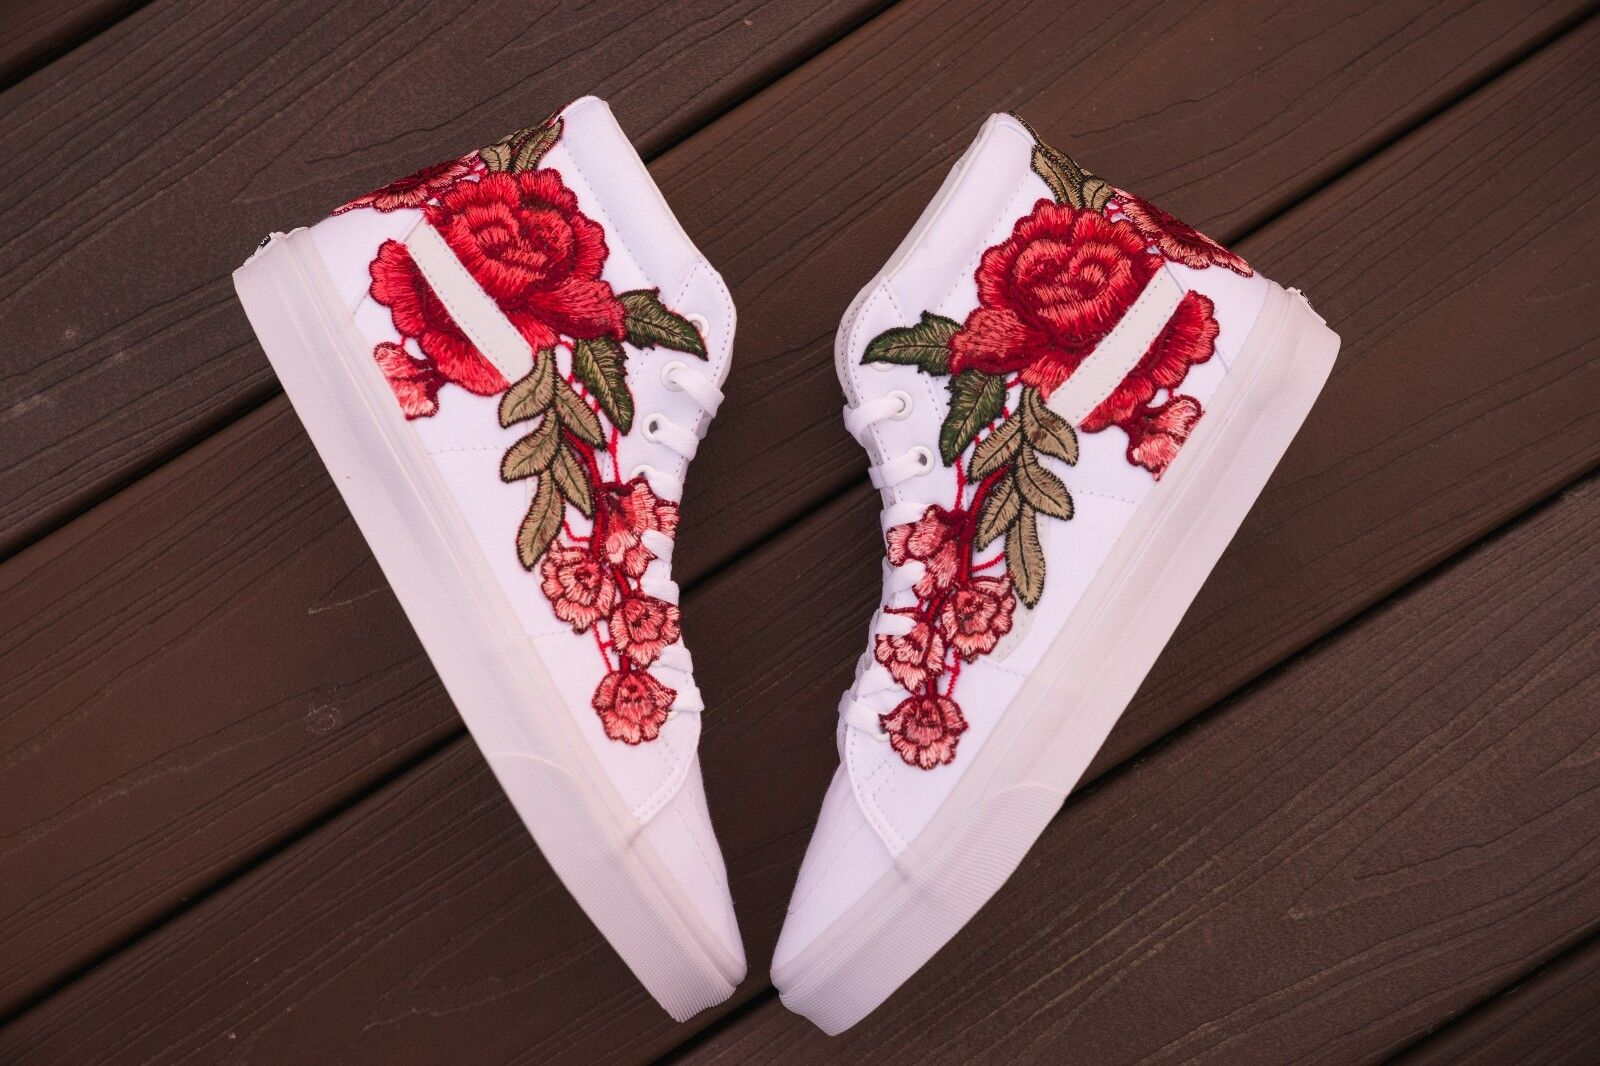 Custom Red Rose Sk8 Hi Vans sz 11 Brand New Ready To Ship Bape Off White